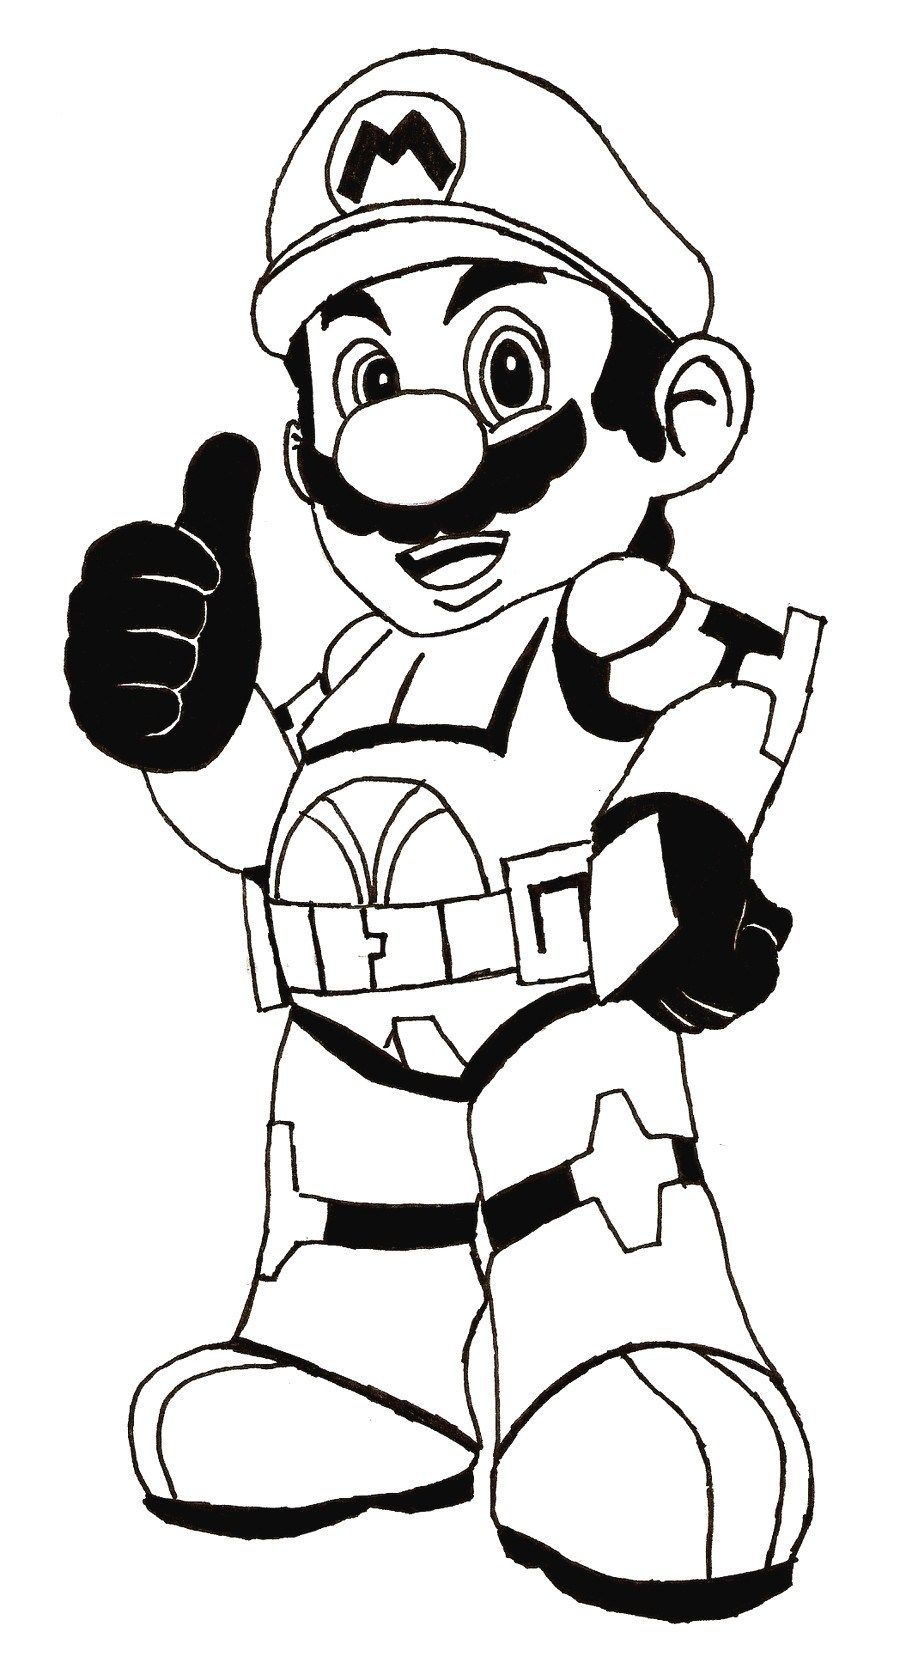 Mario Coloring Pages Luigi And Mario Coloring Pages Coloring Pages Entitlementtrap Com Mario Coloring Pages Super Mario Coloring Pages Cartoon Coloring Pages